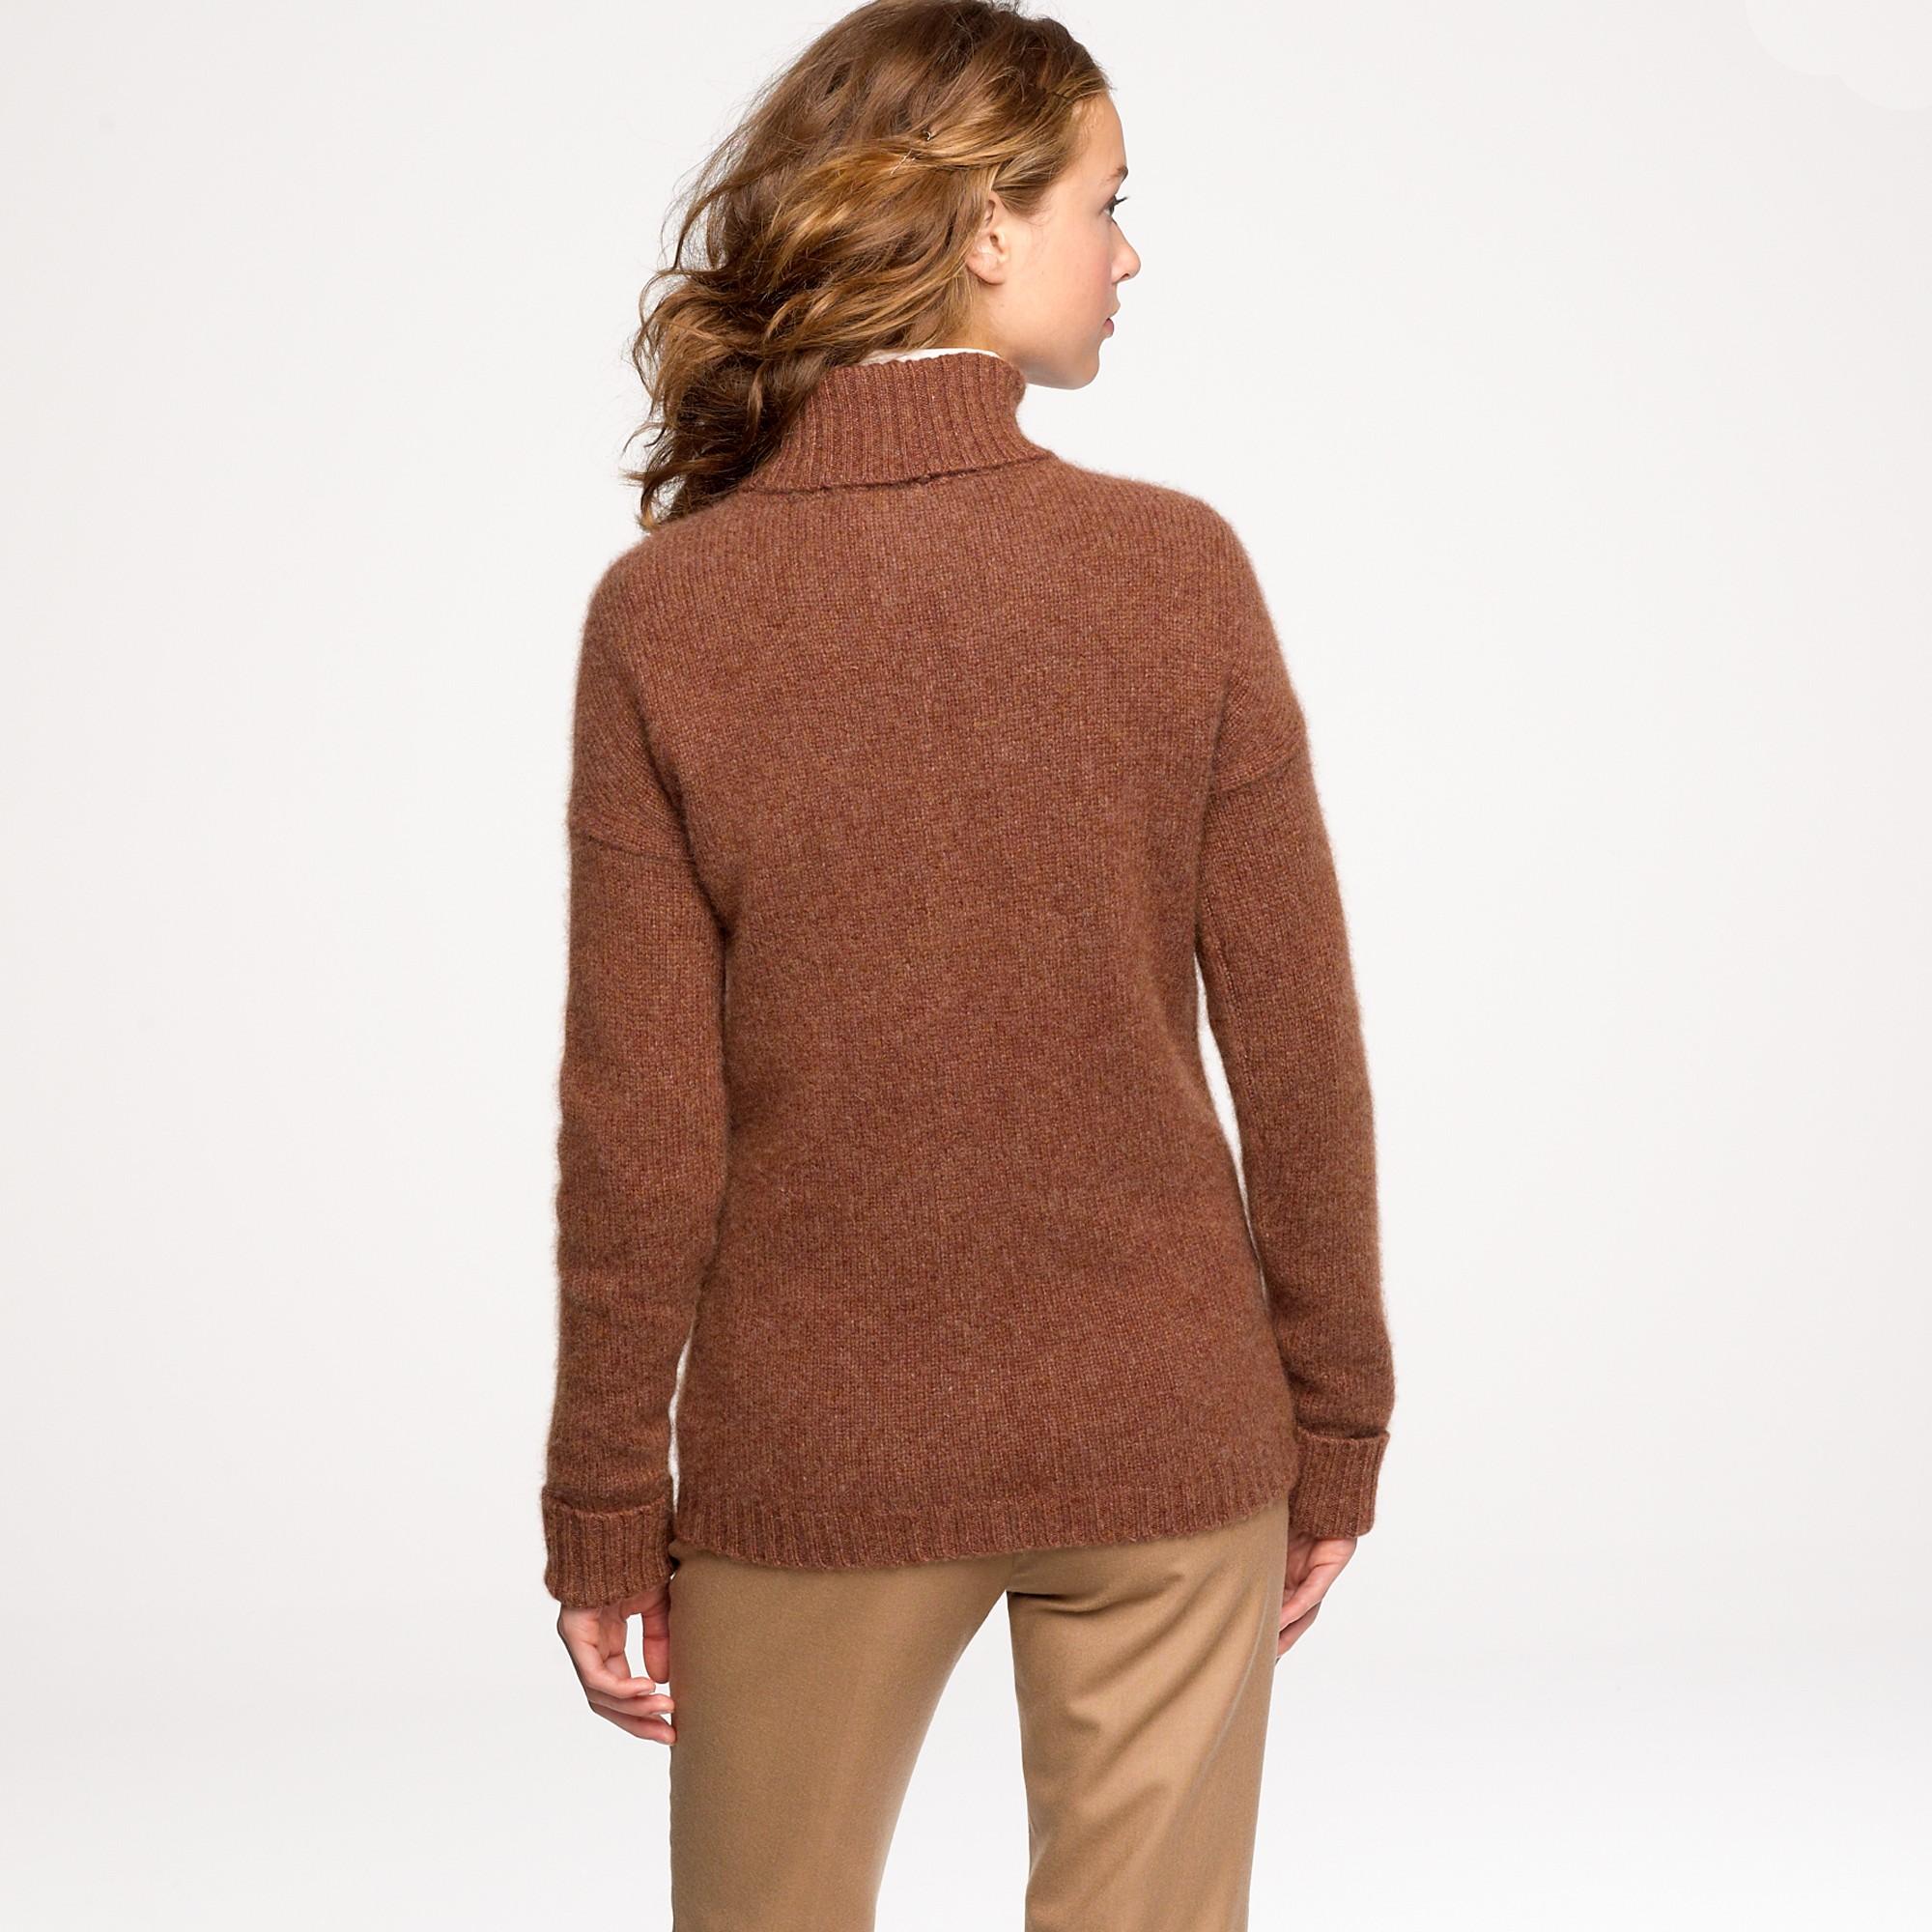 J.crew Cashmere-mohair Turtleneck Sweater in Brown